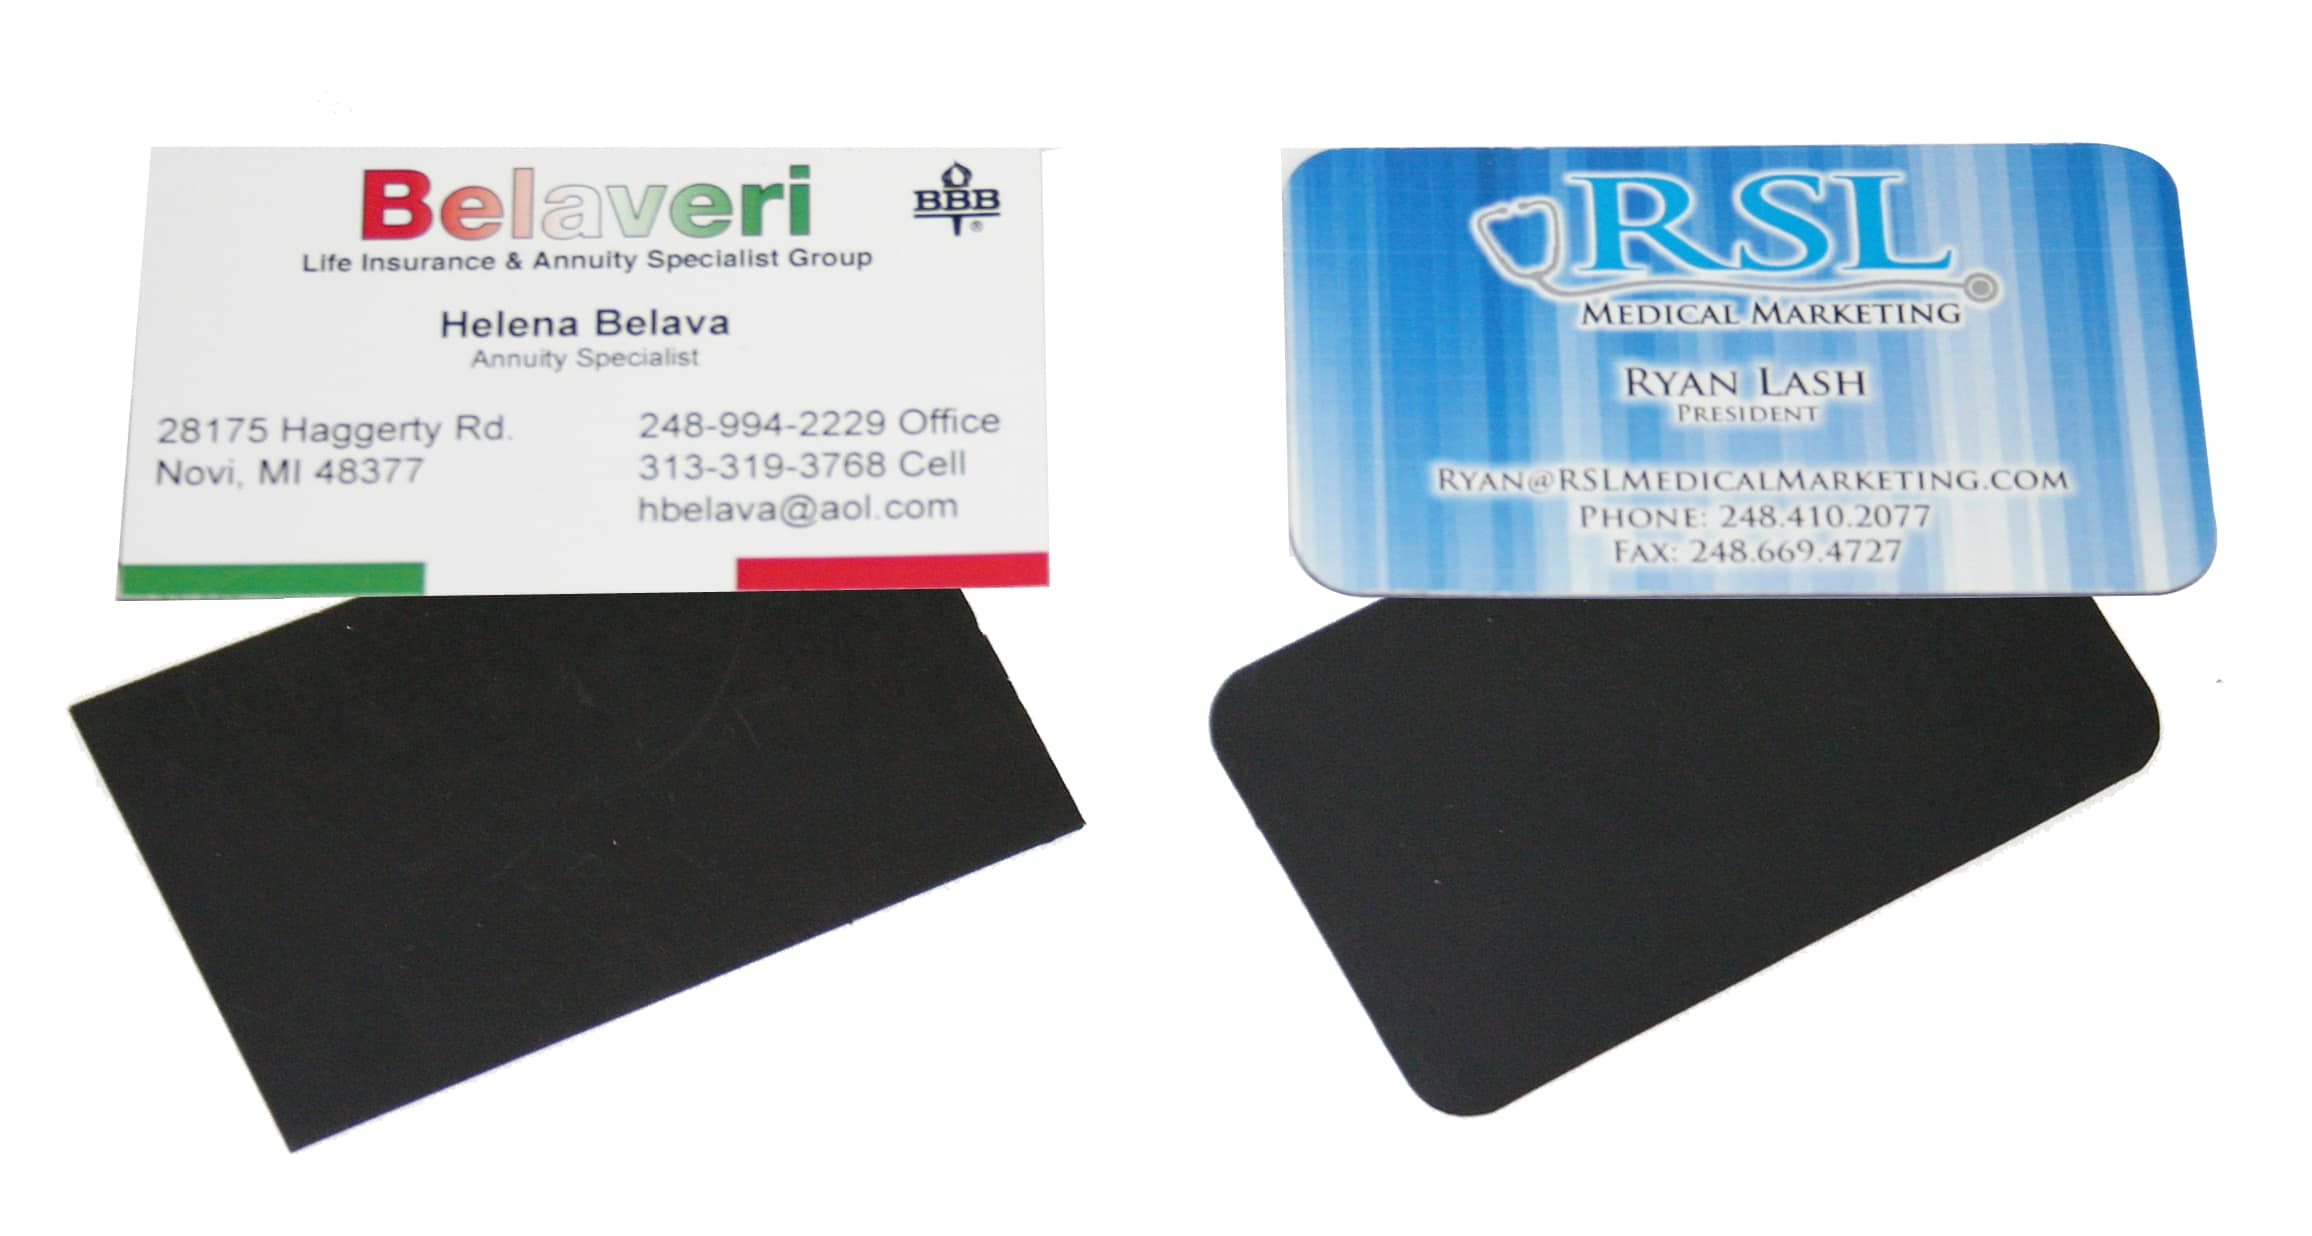 Business cards greko printing and imaging our standard business cards are printed on a high quality thick 14pt stock with a high gloss uv coating finish to enhance the color colourmoves